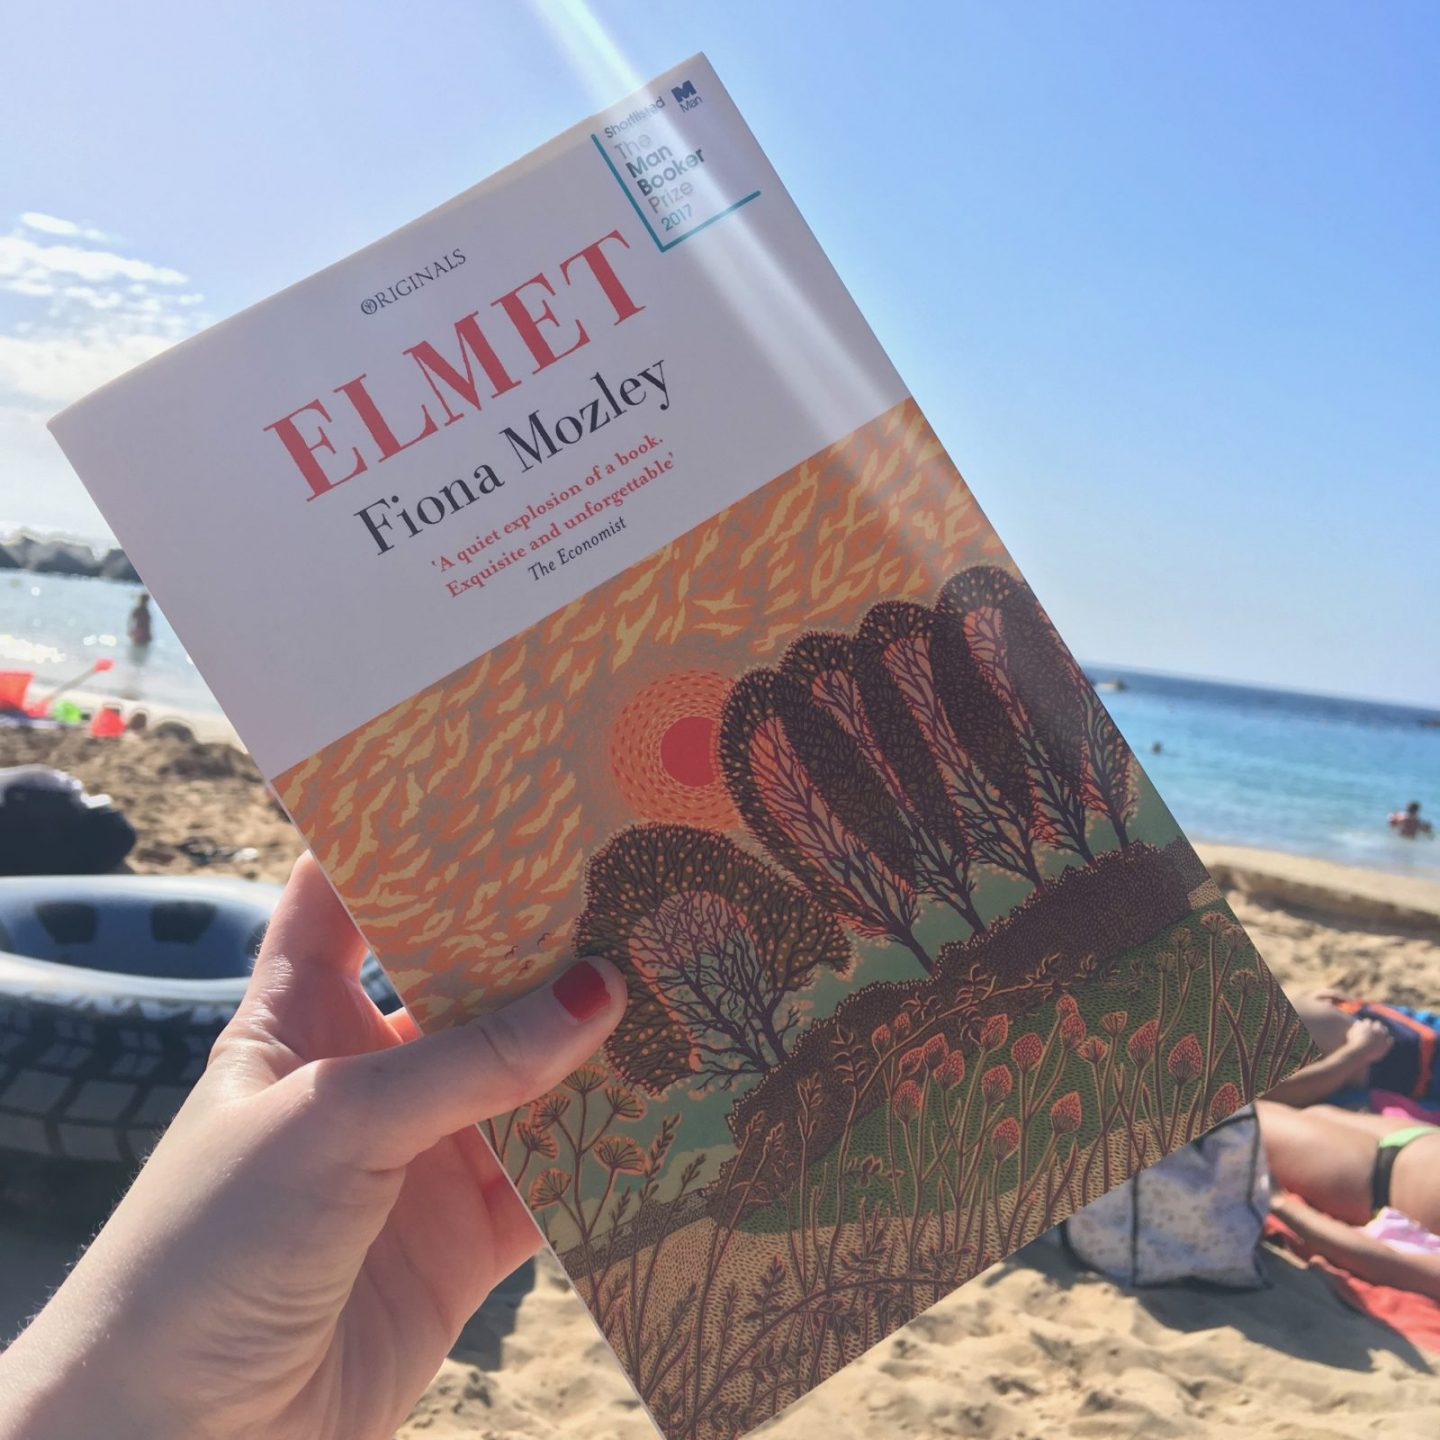 paperback cover of 'elmet' by fiona mozley, with beach and sea in the background